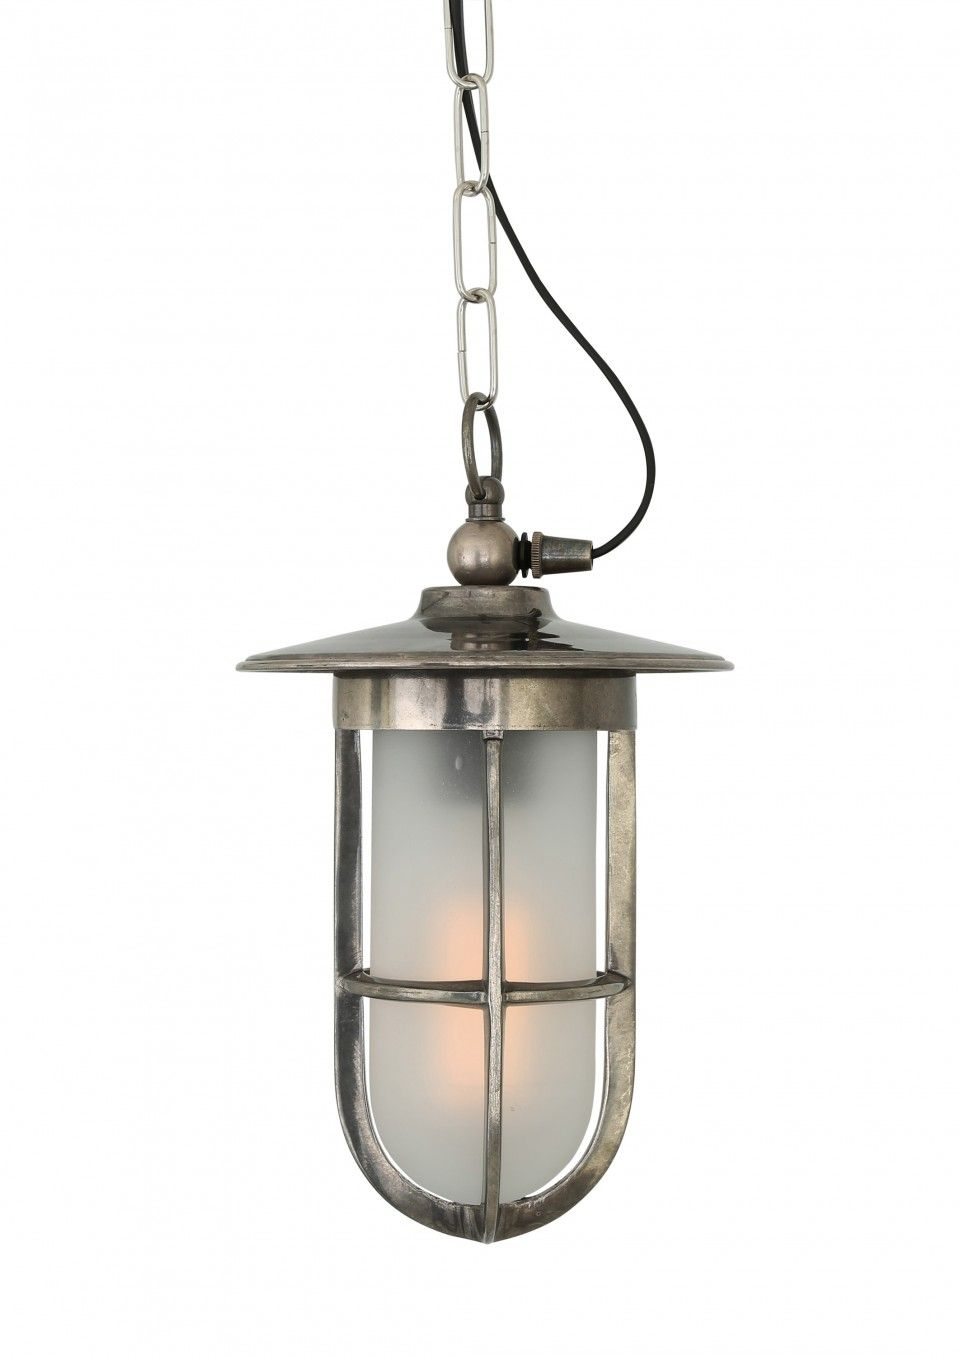 lighting industrial look. Create A Modern Industrial Look In Your Home With Our Stylish Asmara Well Glass Pendant Light Lighting